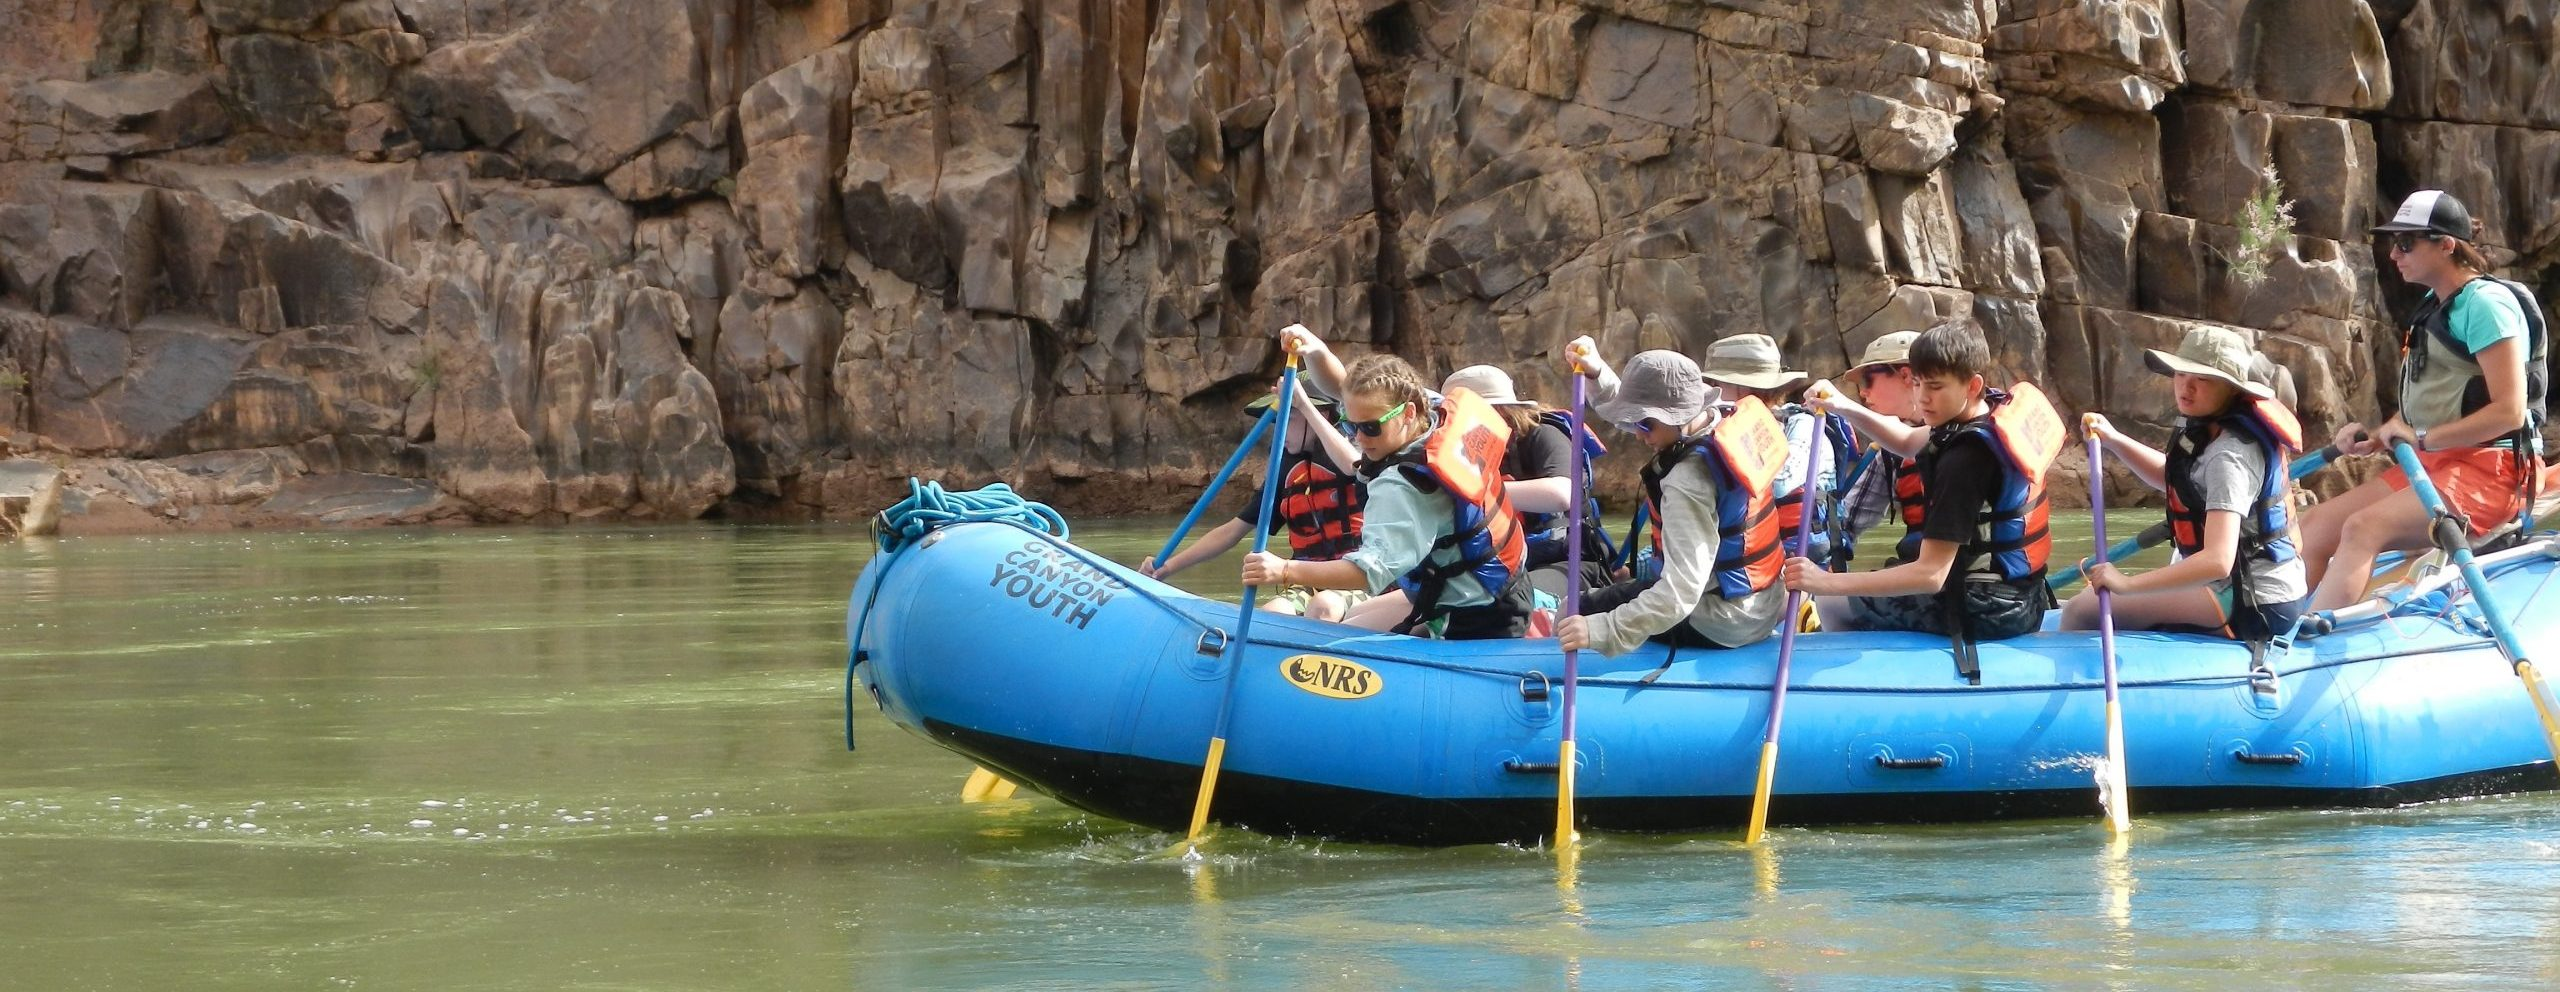 Grand Canyon Youth alumni rowing a blue paddle boat with a guide on the back